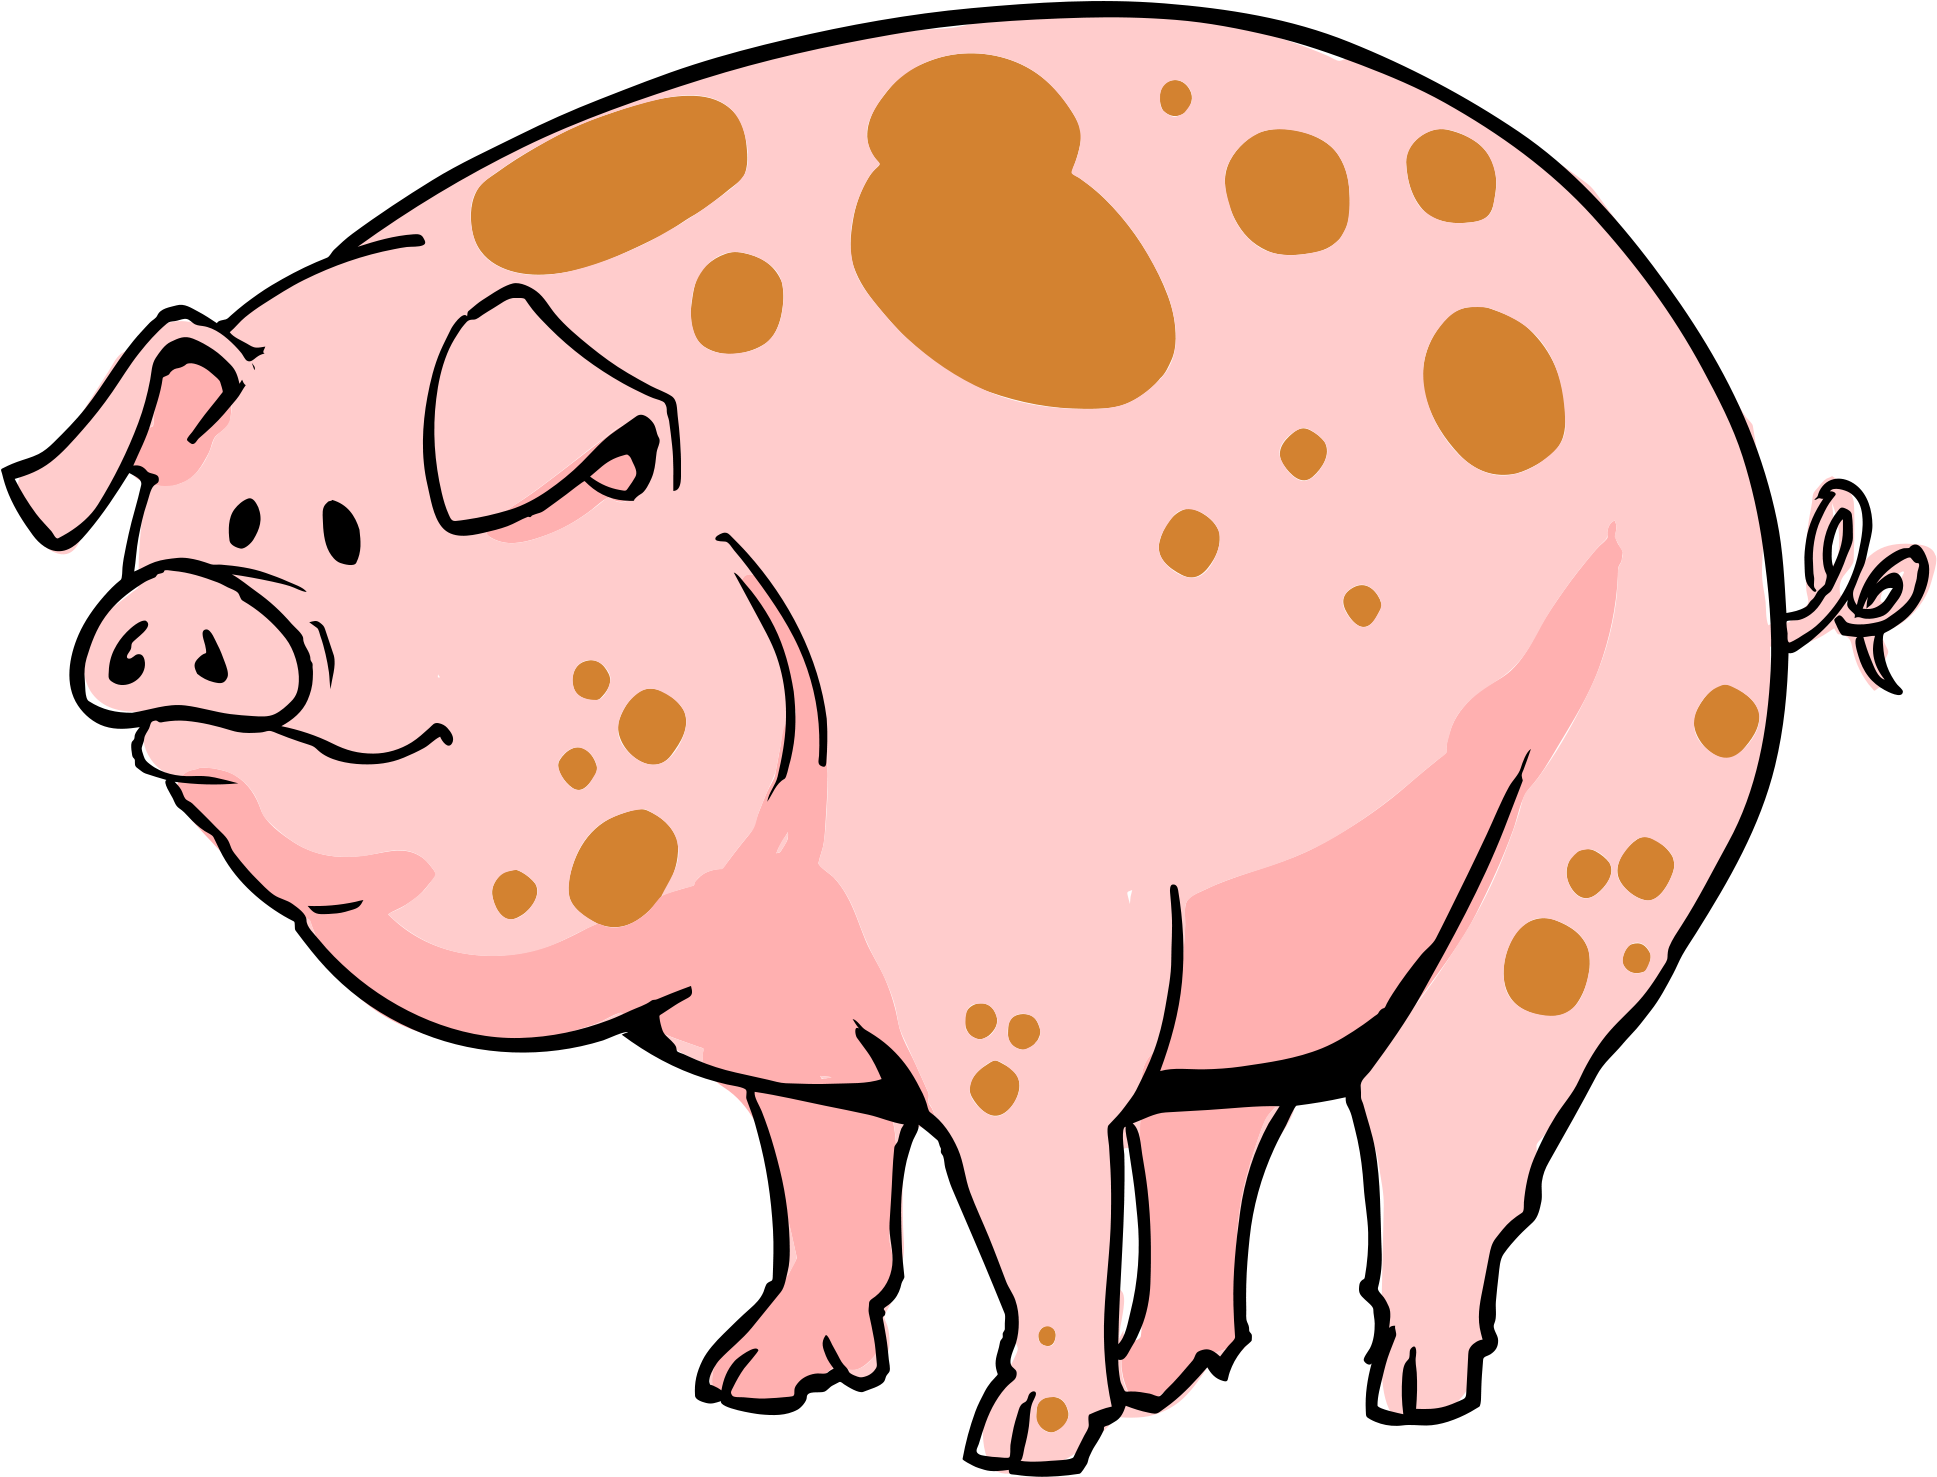 11 pigs clipart image library stock Pig Cartoon - Pig Cartoon Transparent Clipart - Full Size Clipart ... image library stock